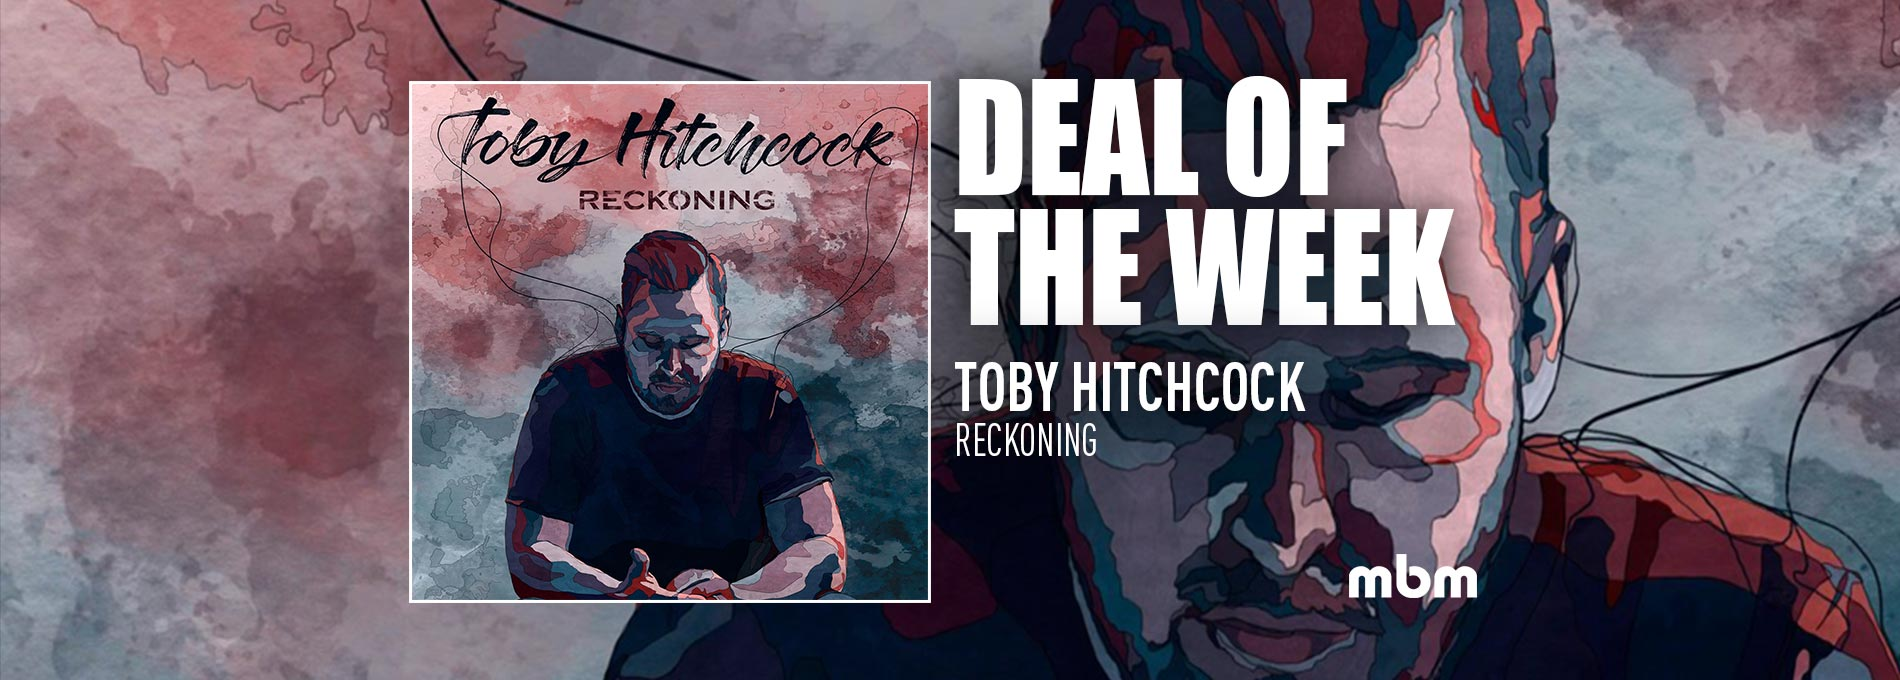 Deal Of The Week: HITCHCOCK, TOBY - Reckoning